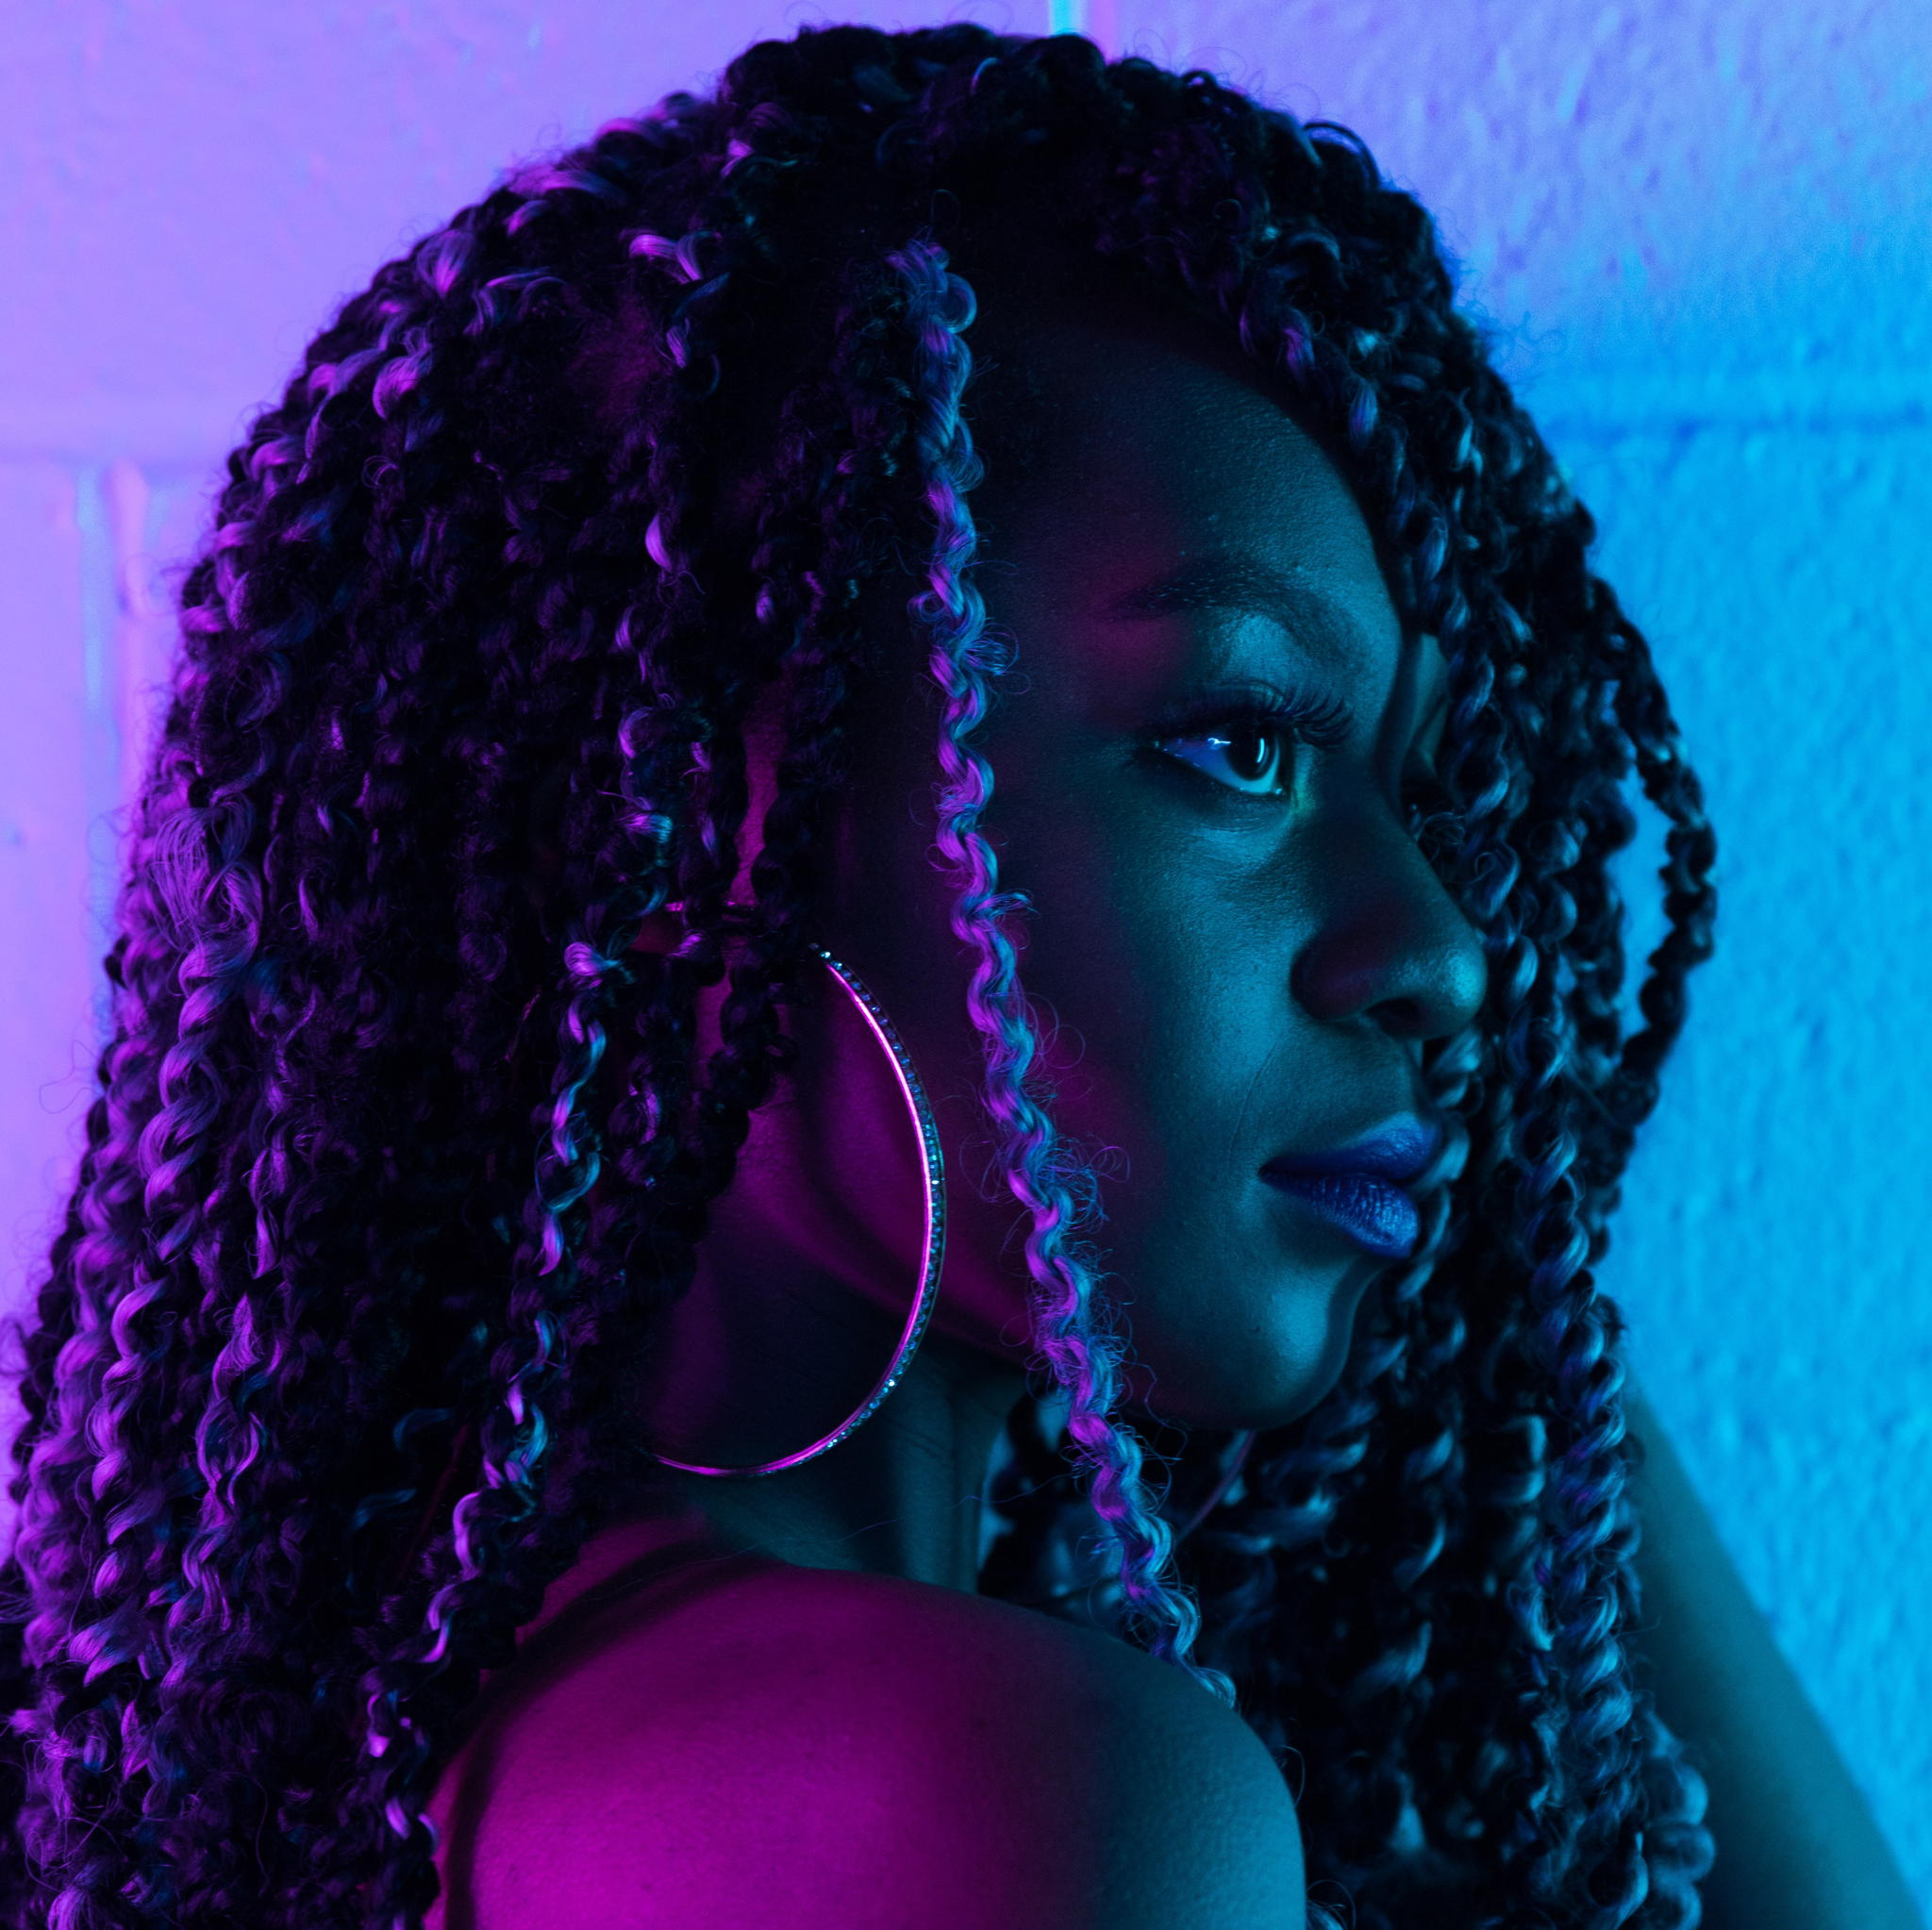 A black woman with long curls surrounded by the bi colors, she is looking forward.